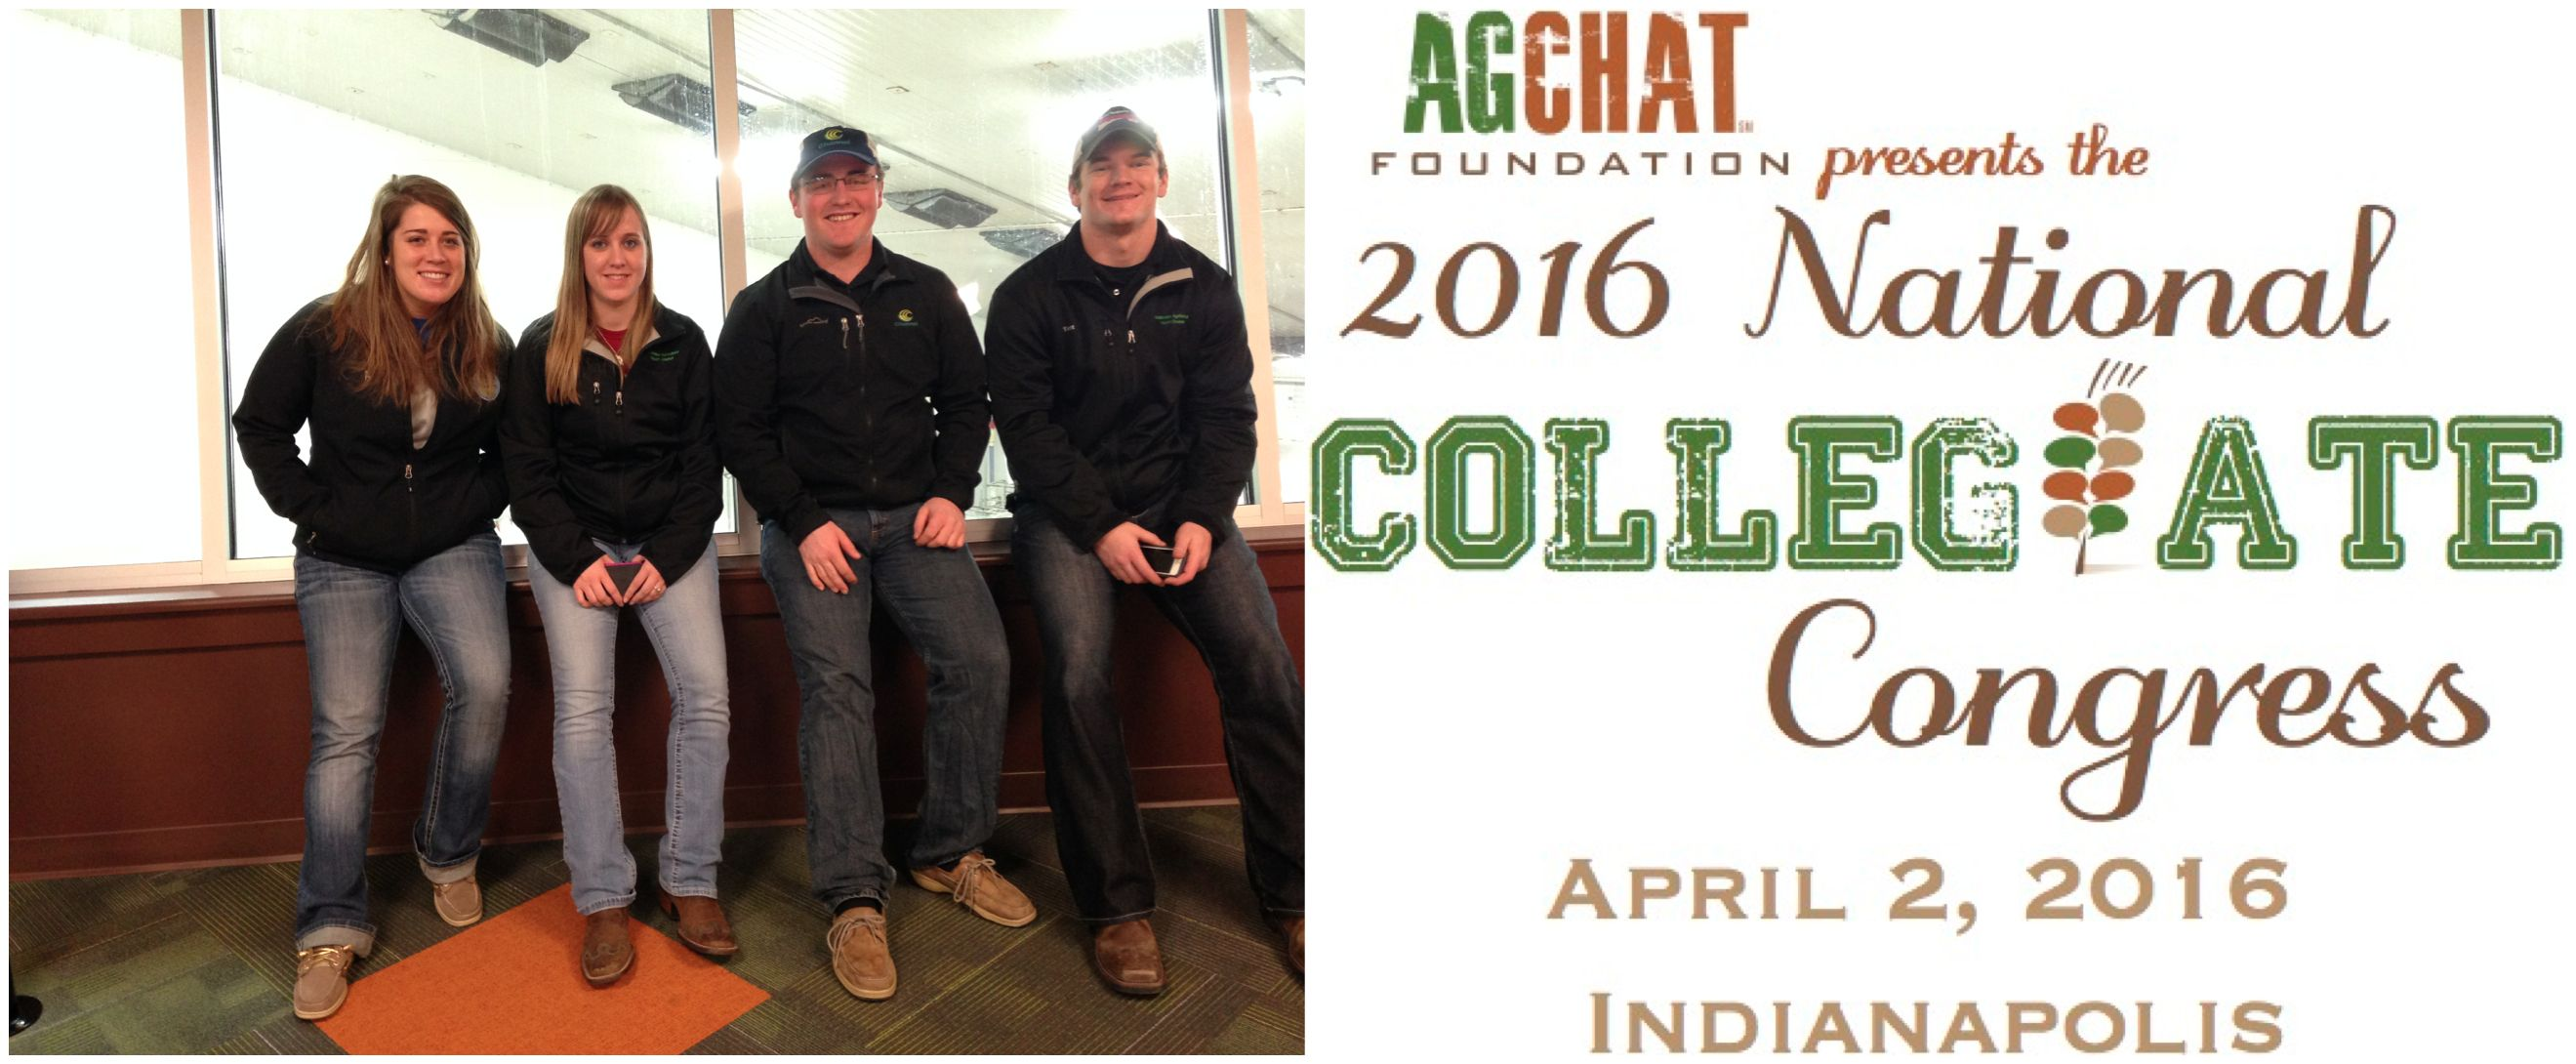 The AgChat Foundation's 2016 Collegiate Congress is in Indianapolis on April 2, being held at Dow AgroSciences. The event is for college students or recent graduates in agriculture majors and minors to learn more about using social and digital media to bridge the agriculture to consumer gap.